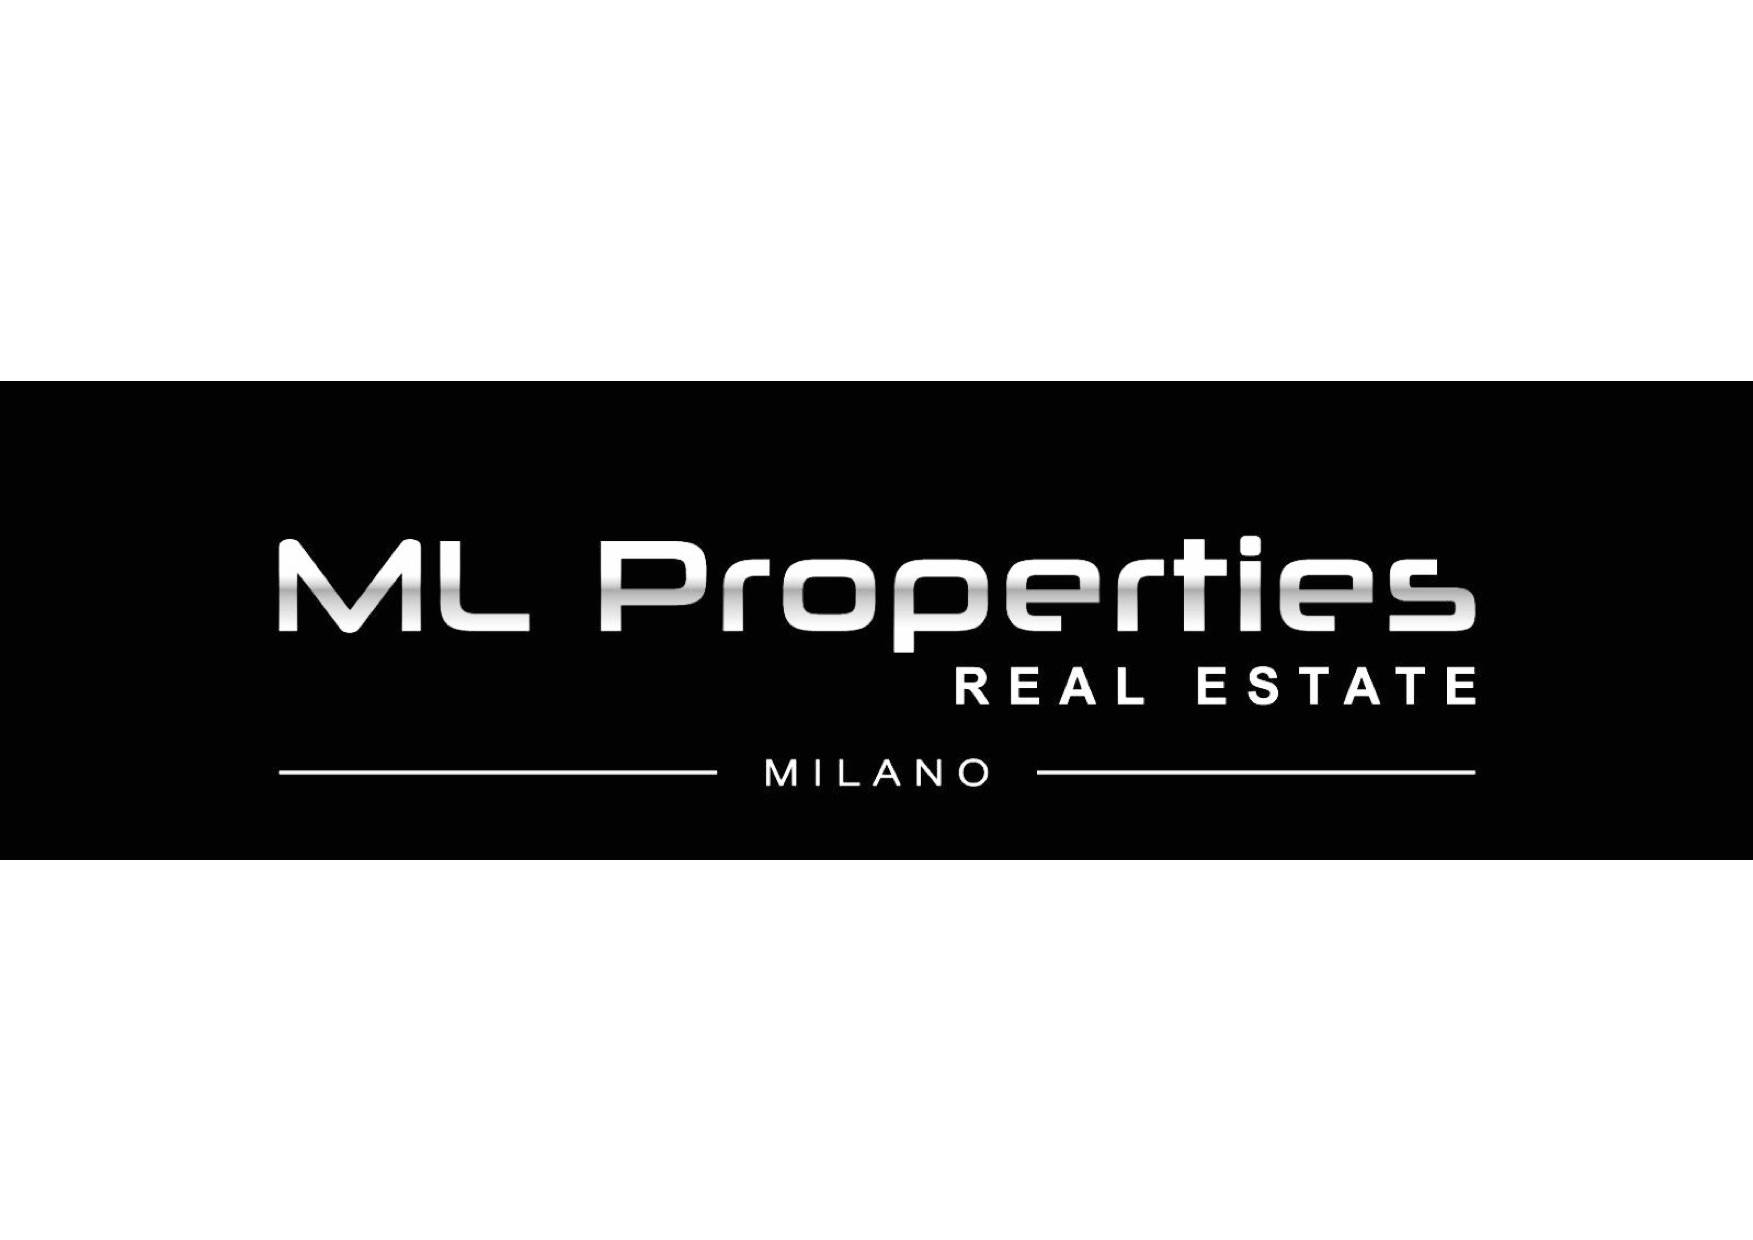 ML PROPERTIES